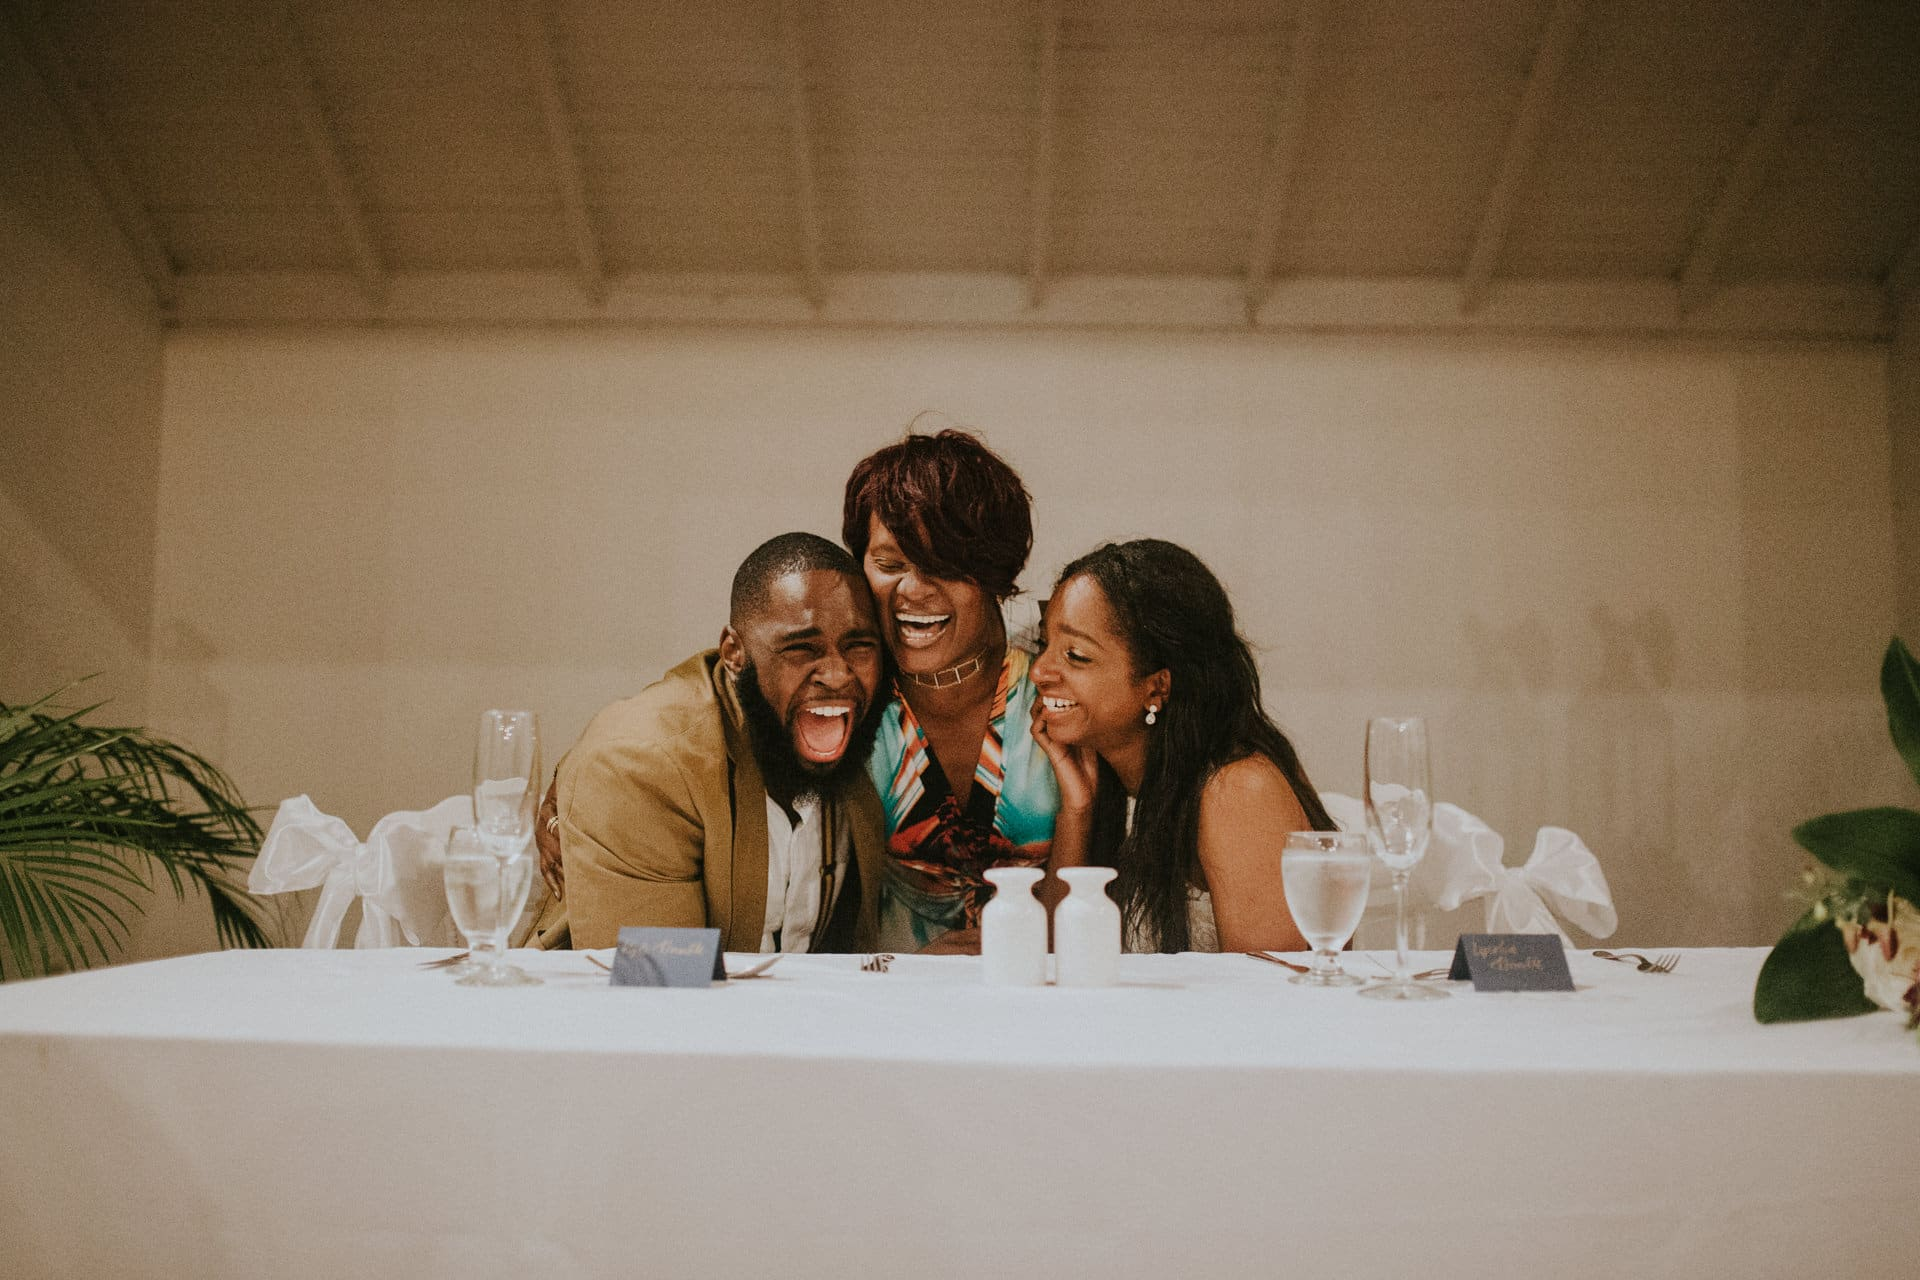 The wedding couple and a guest are laughing and sitting at the wedding table.